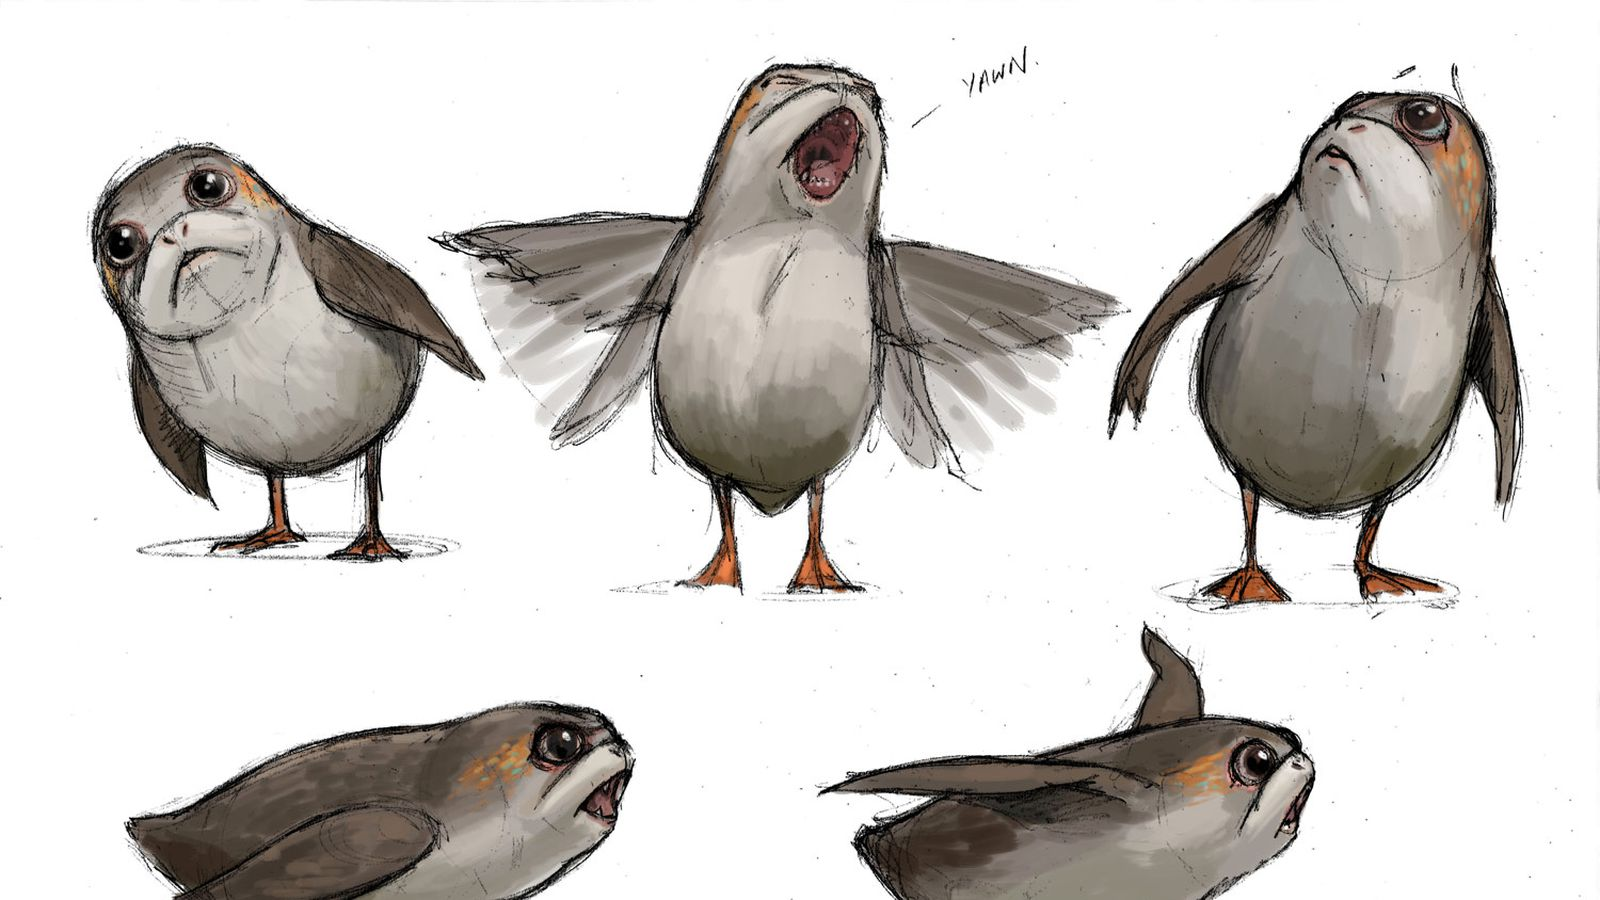 Star Wars The Last Jedi S Lovable Porgs Are Fans Newest